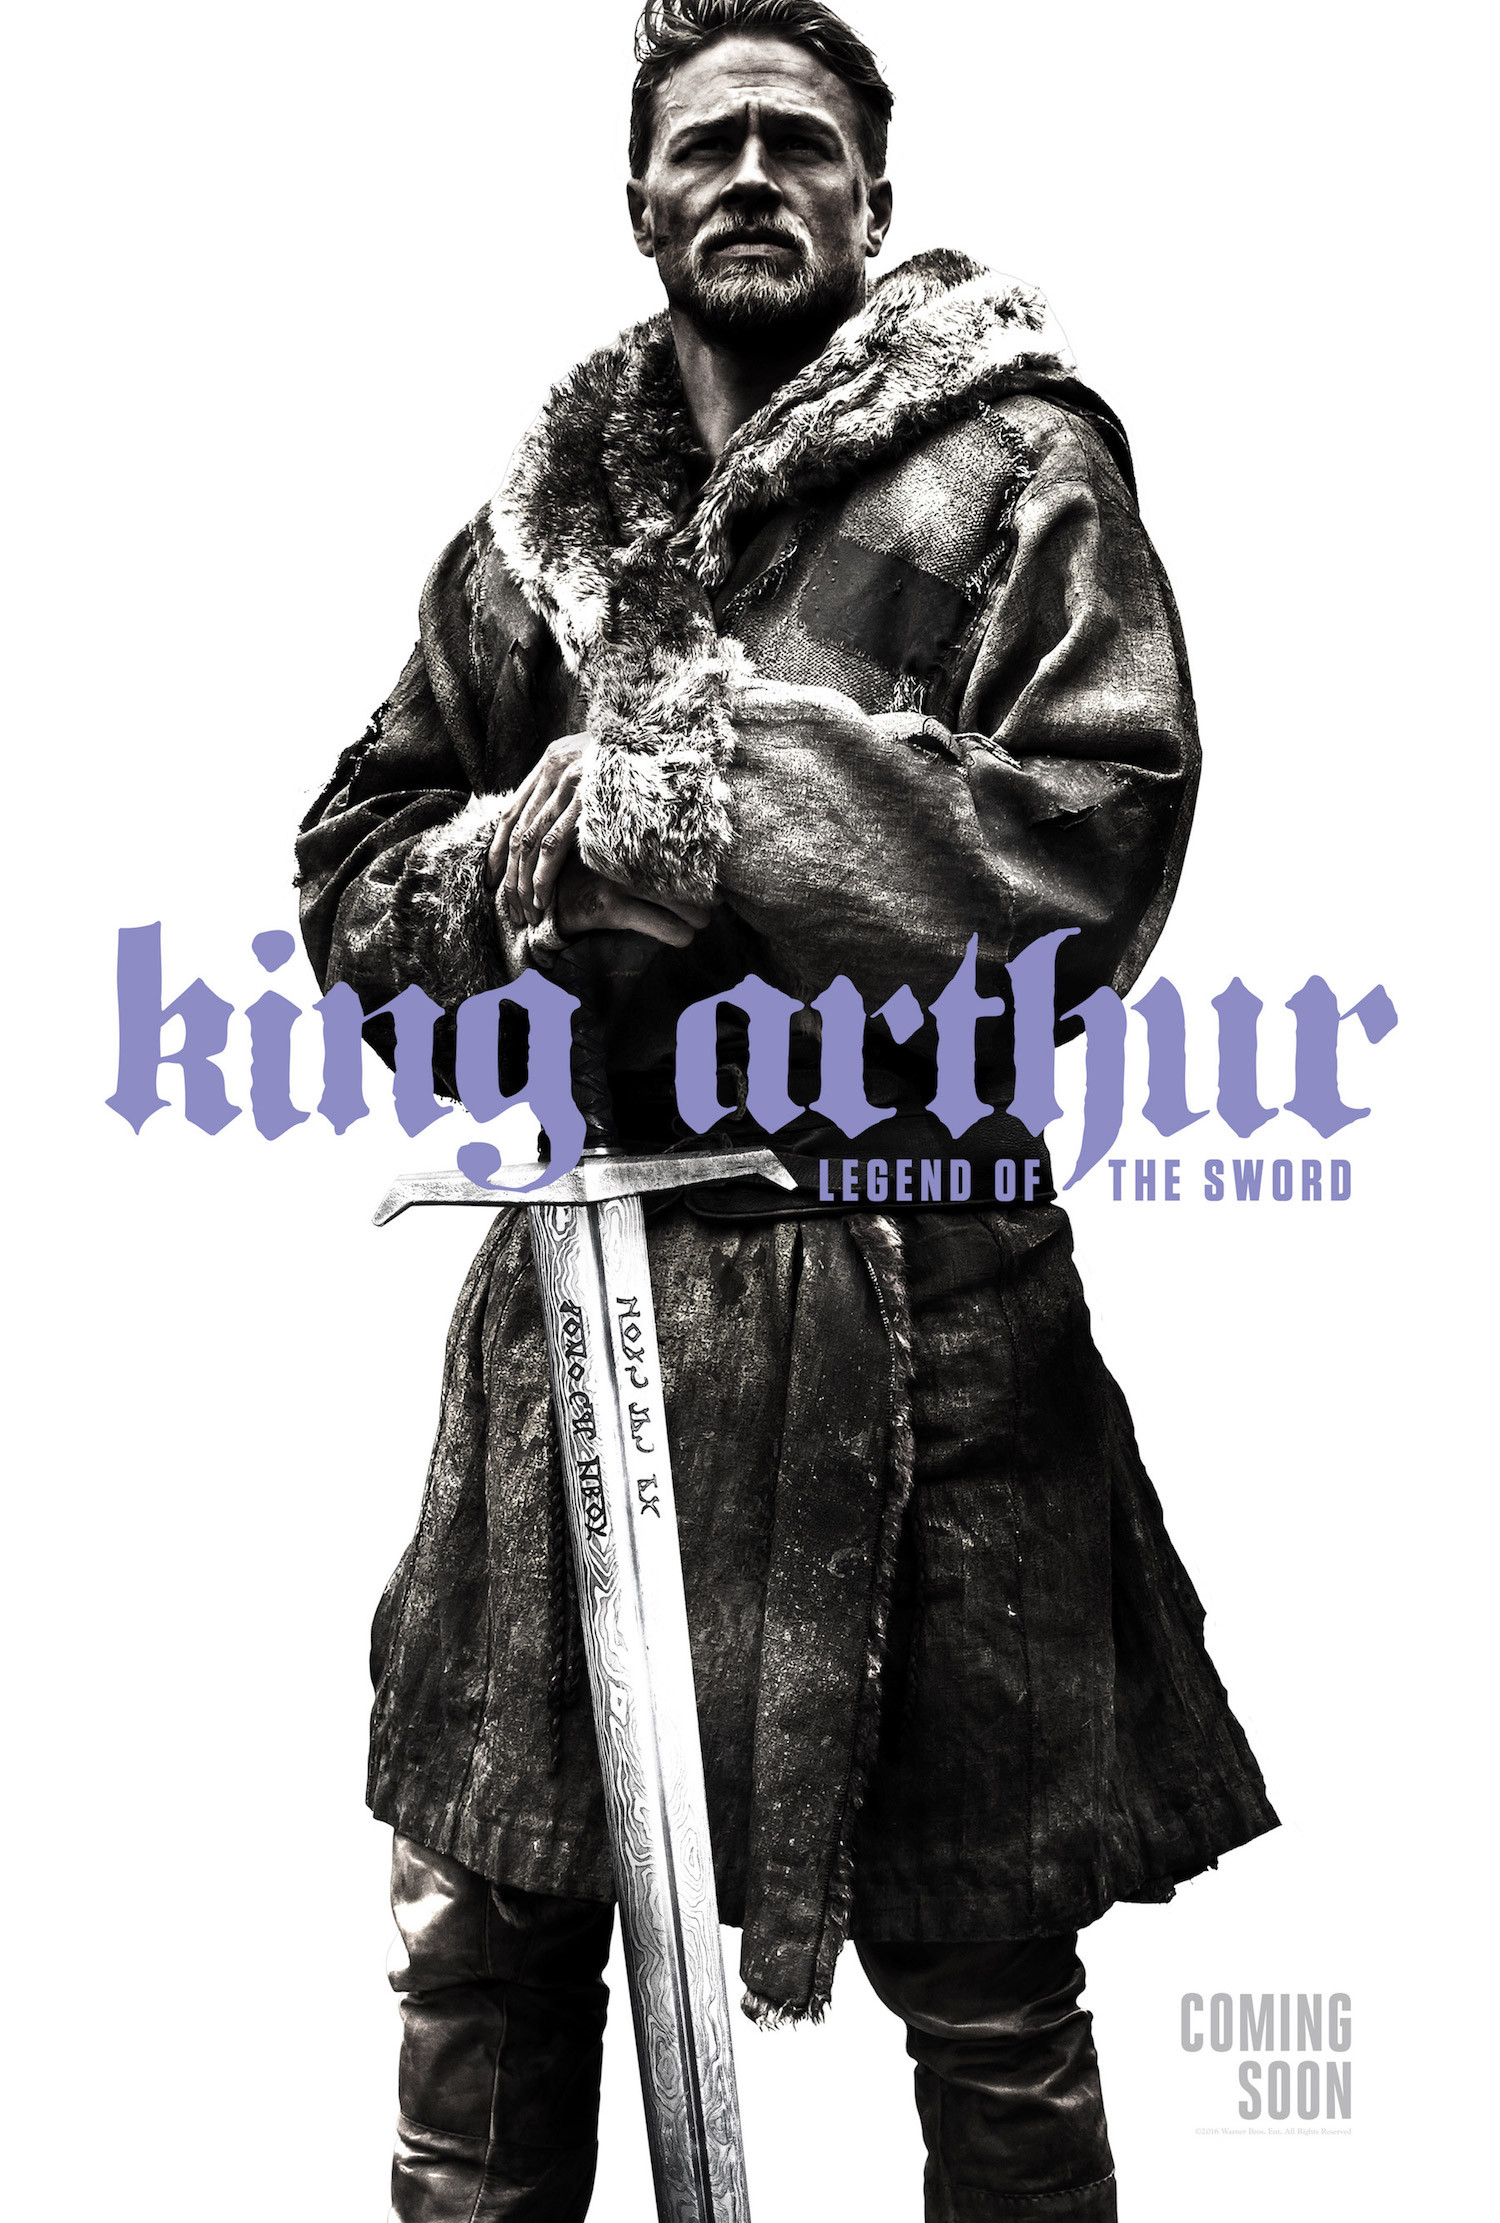 1500x2223 King Arthur: Legend of the Sword - Poster Gallery View Large Poster